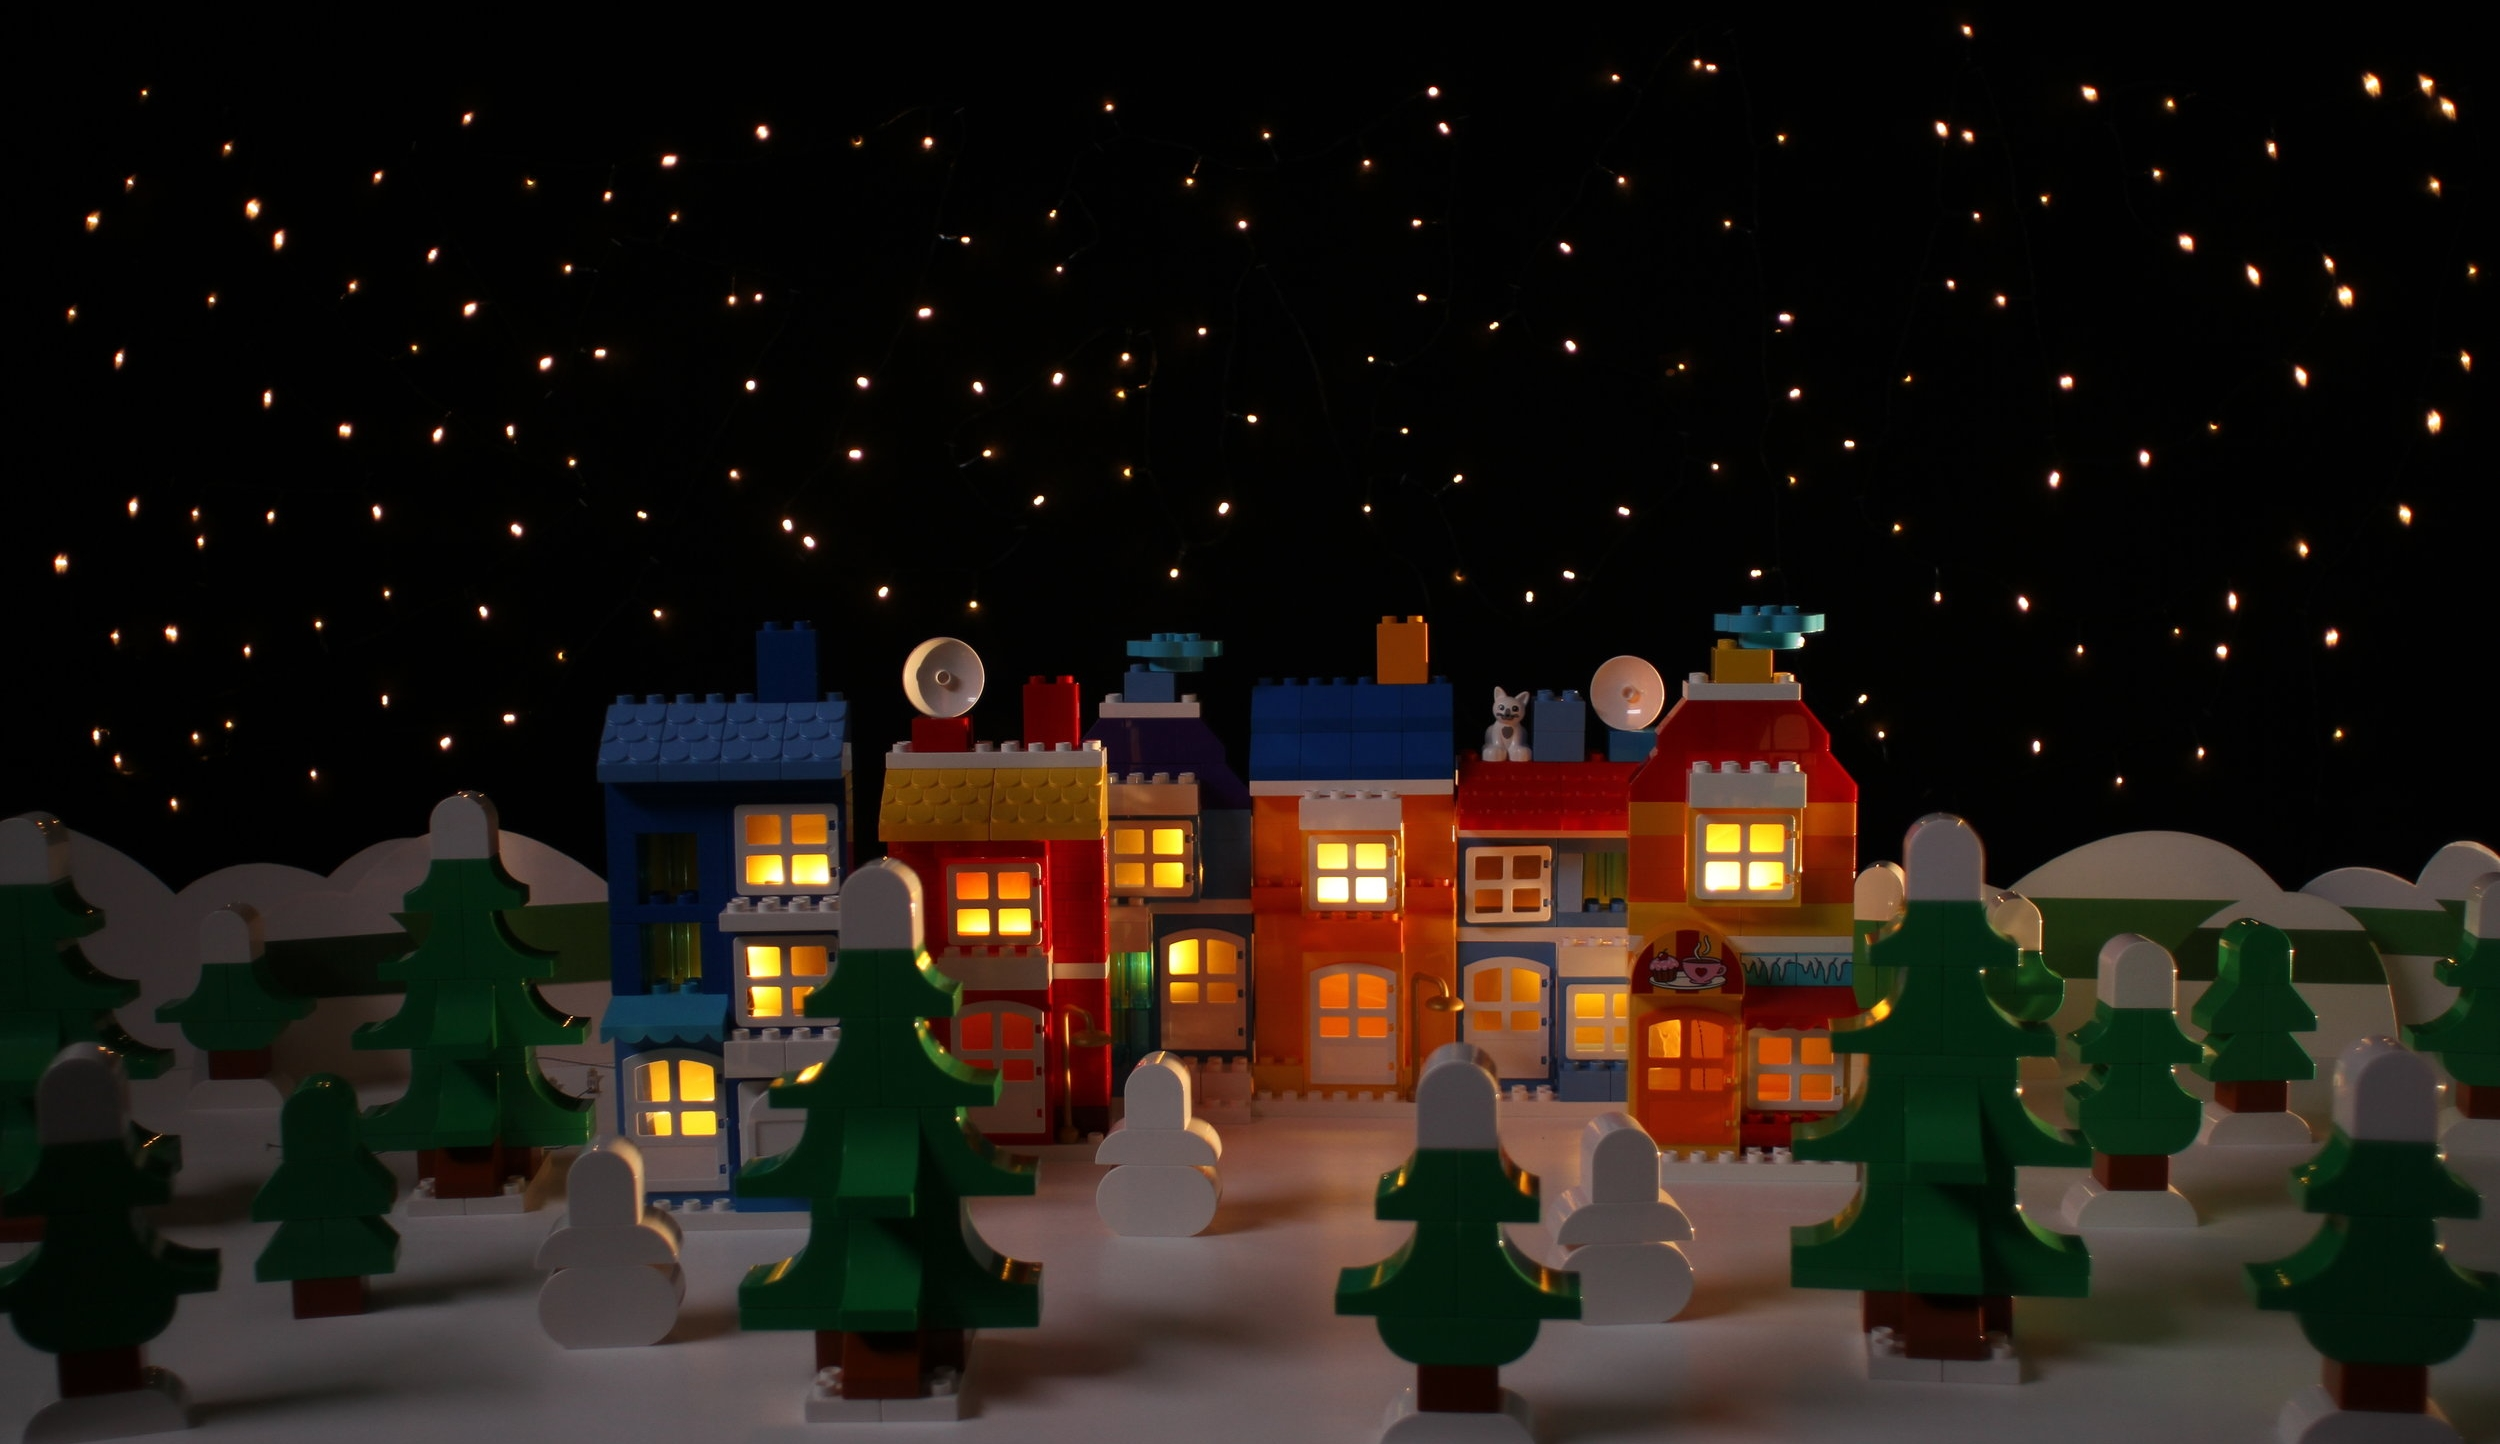 Christmas Card 2016 - Olibrius had the privilege to create and animate LEGO Duplo's 2016's Christmas Card, in partnership with M2FILM, Aarhus.